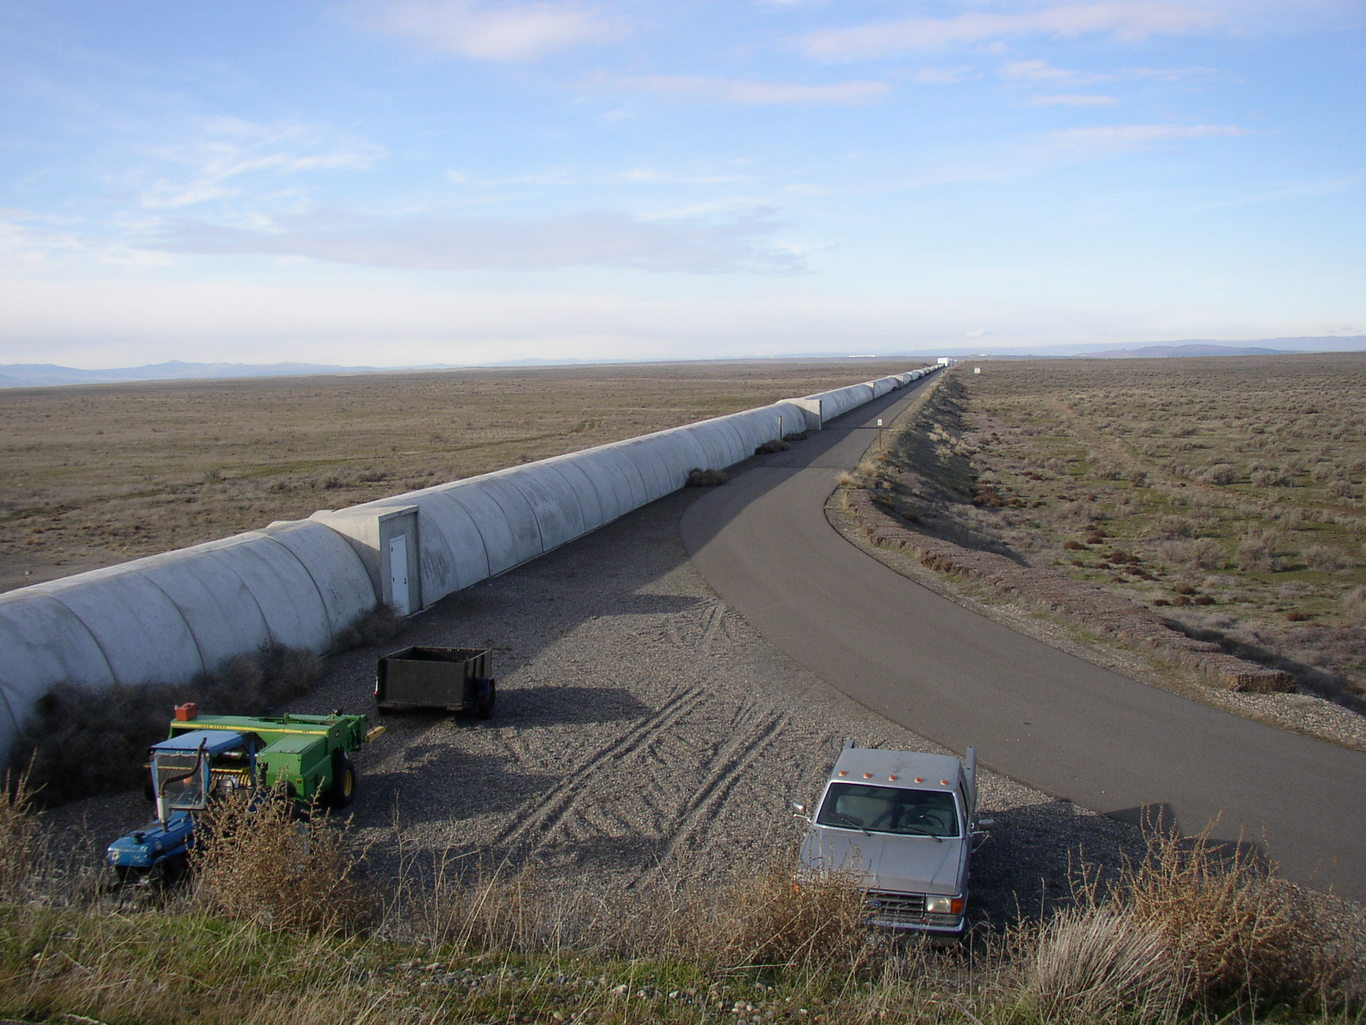 Northern leg of LIGO interferometer in Washington, US. - Image Credit: Umptanum/WikimediaCommons